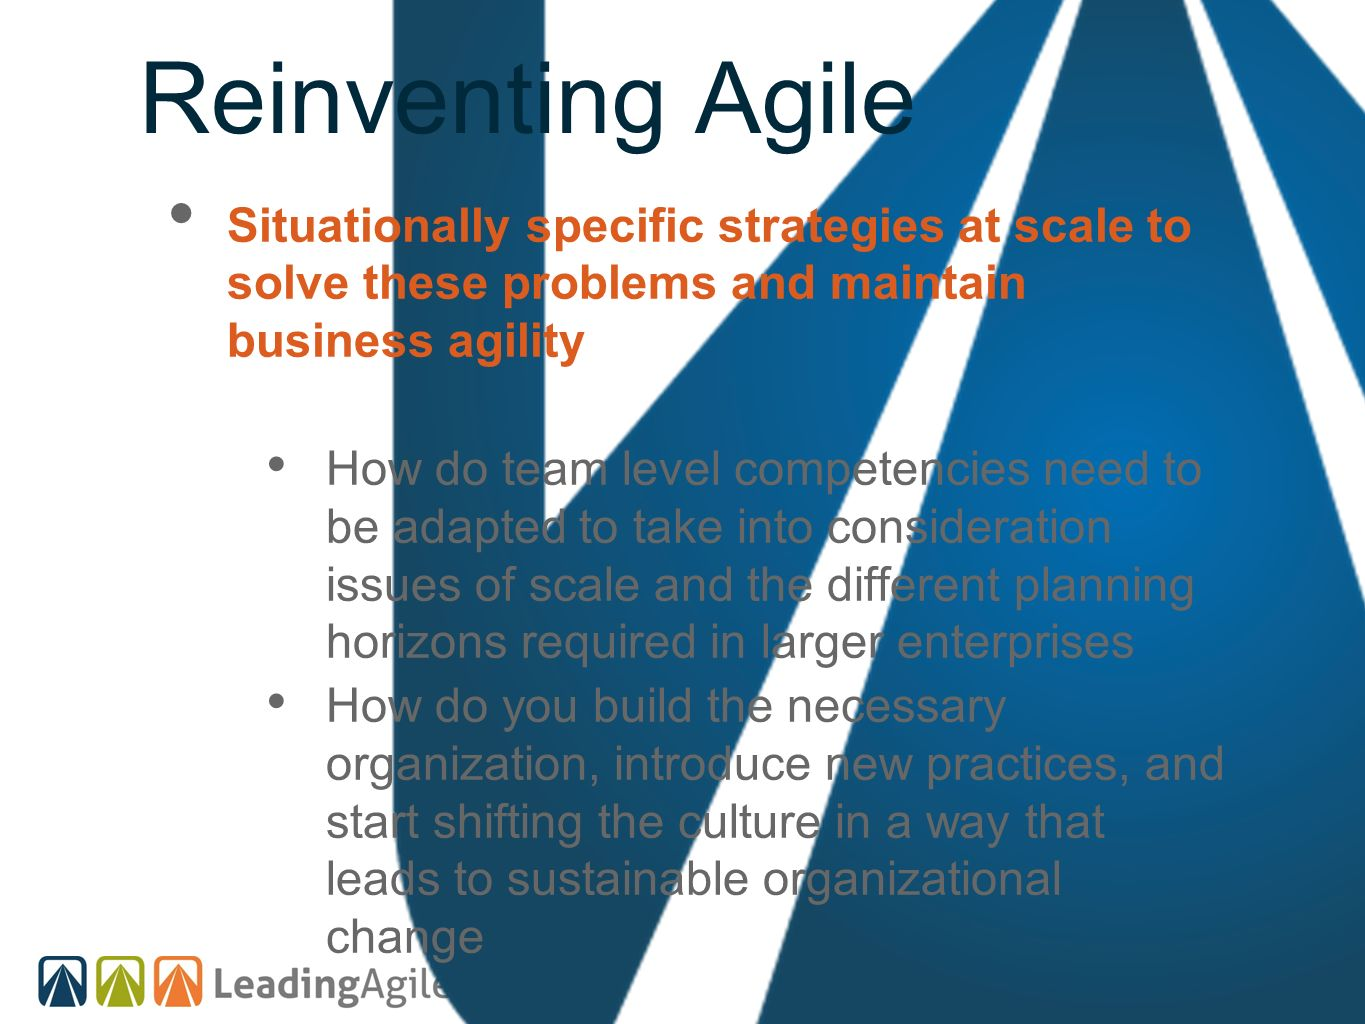 Reinventing Agile Situationally specific strategies at scale to solve these problems and maintain business agility.